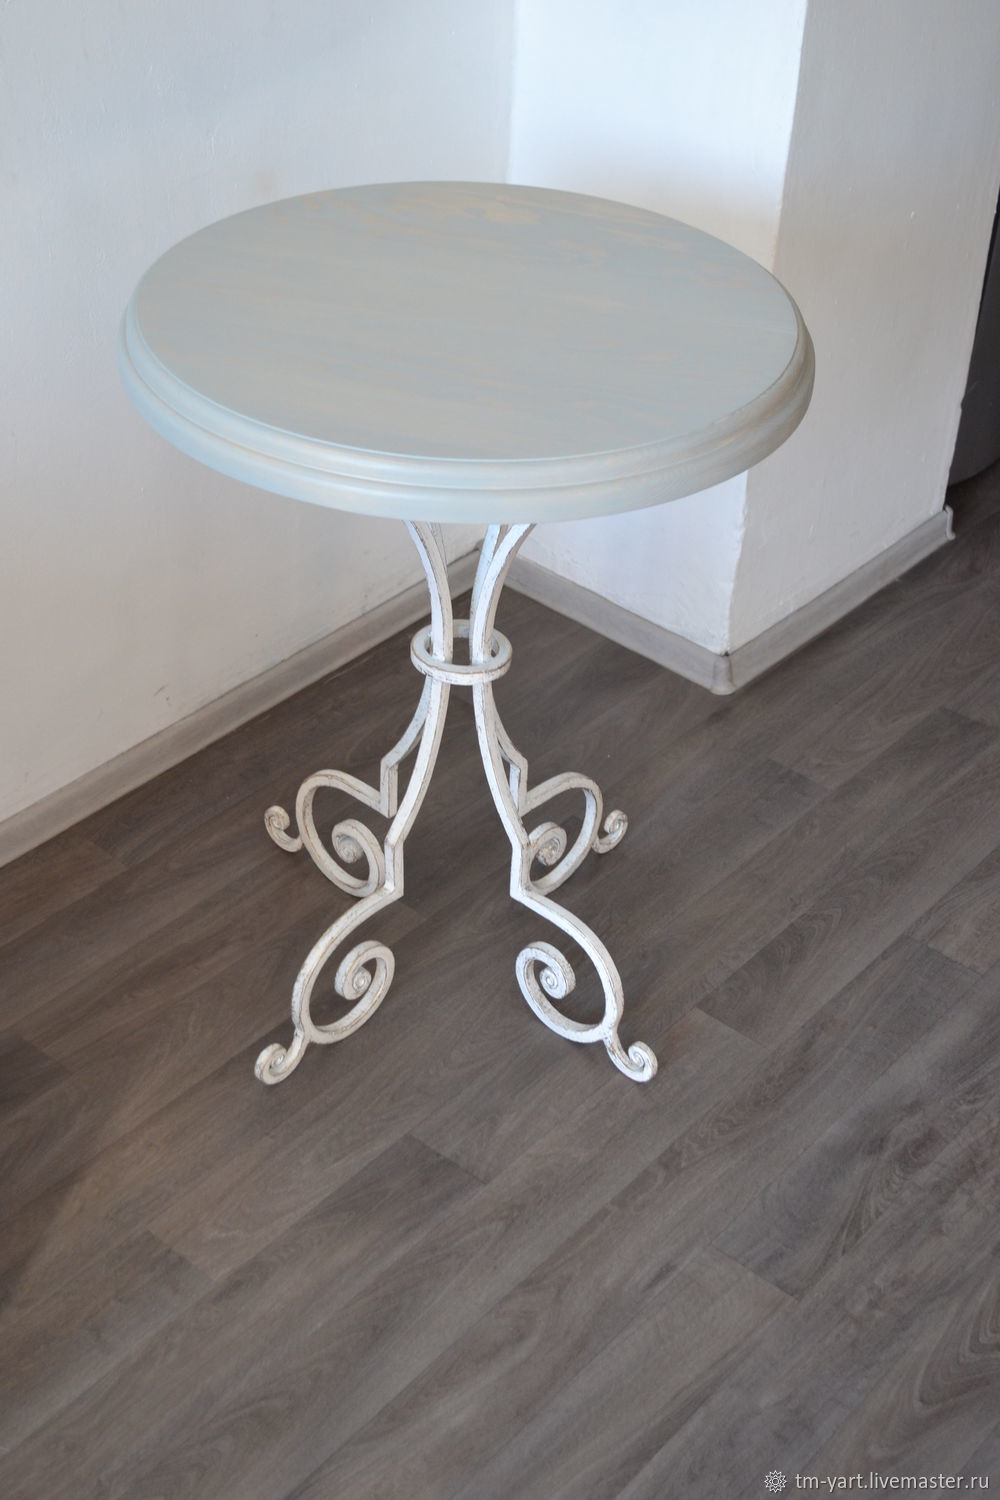 Wrought iron table ' LAVENDER', Tables, Barnaul,  Фото №1